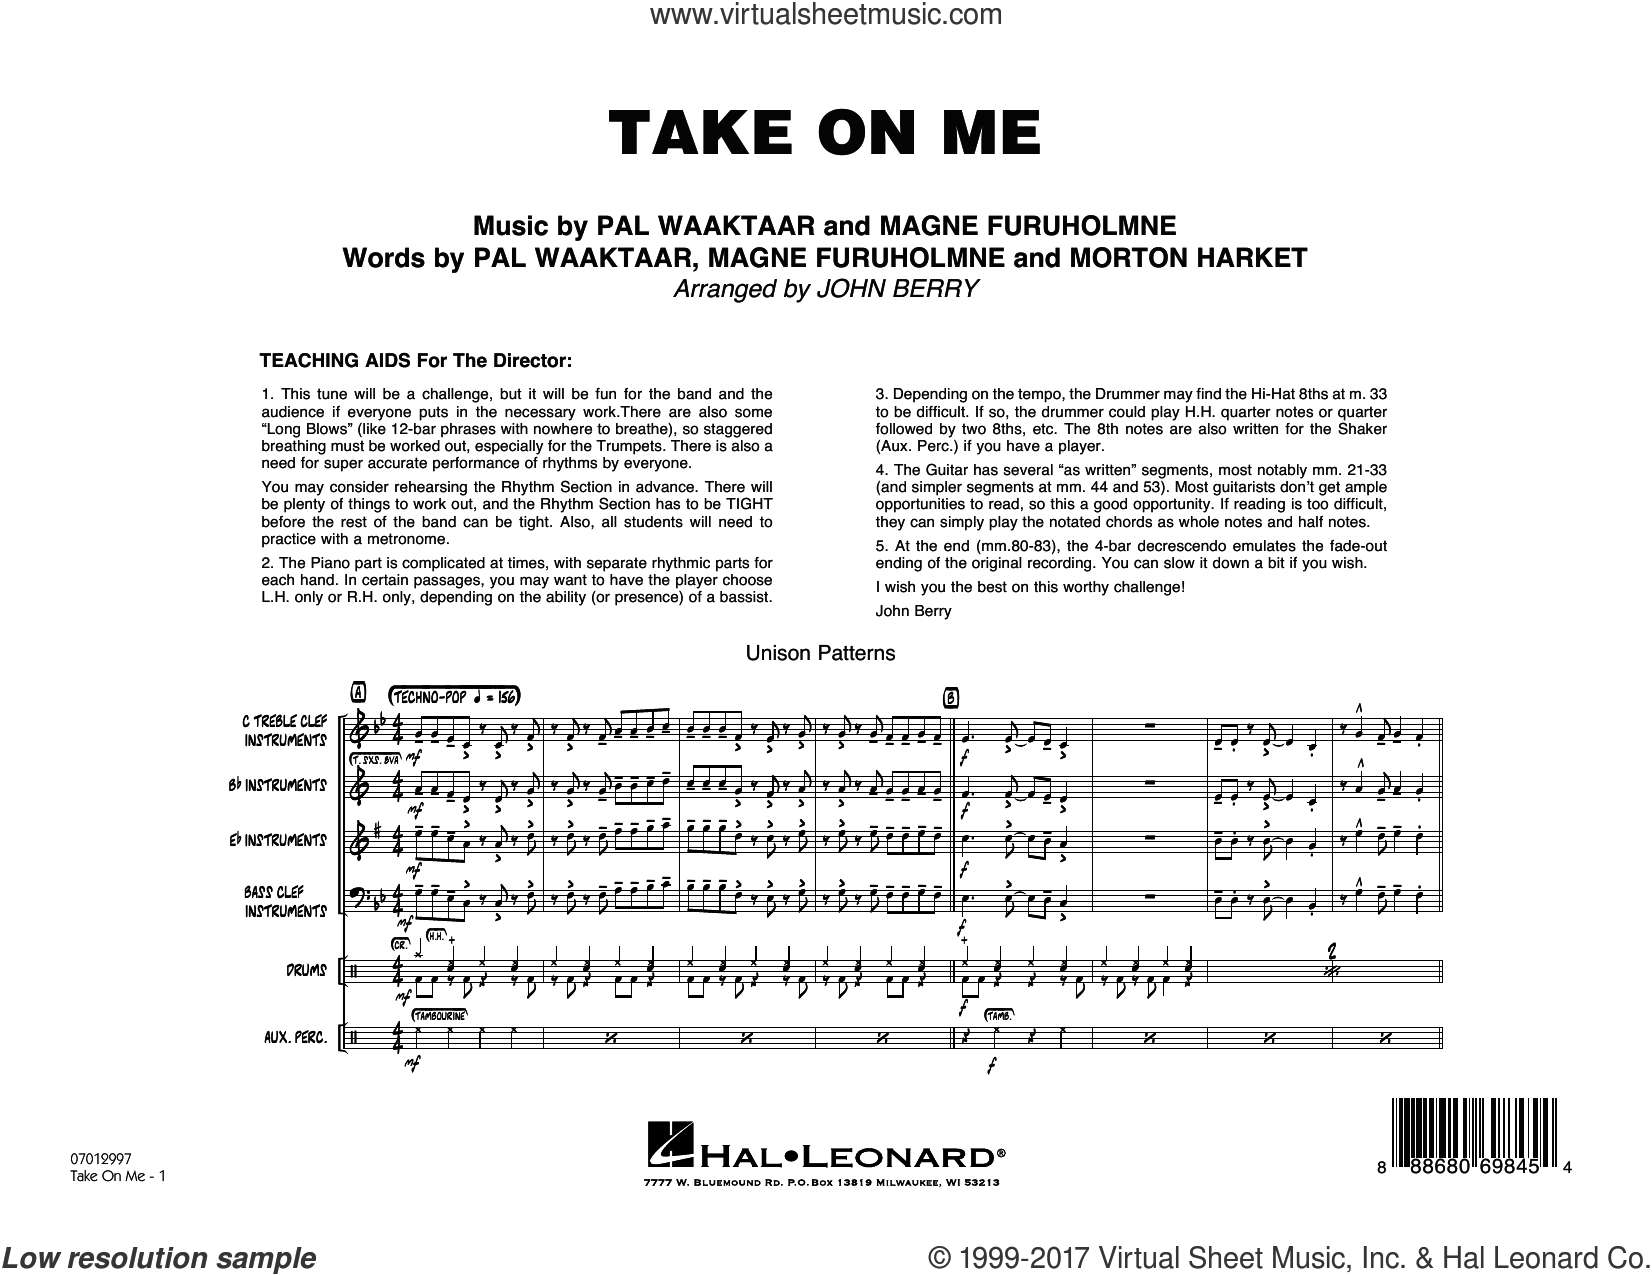 Take on Me (COMPLETE) sheet music for jazz band by John Berry, a-ha, Magne Furuholmne, Morton Harket and Pal Waaktaar, intermediate skill level